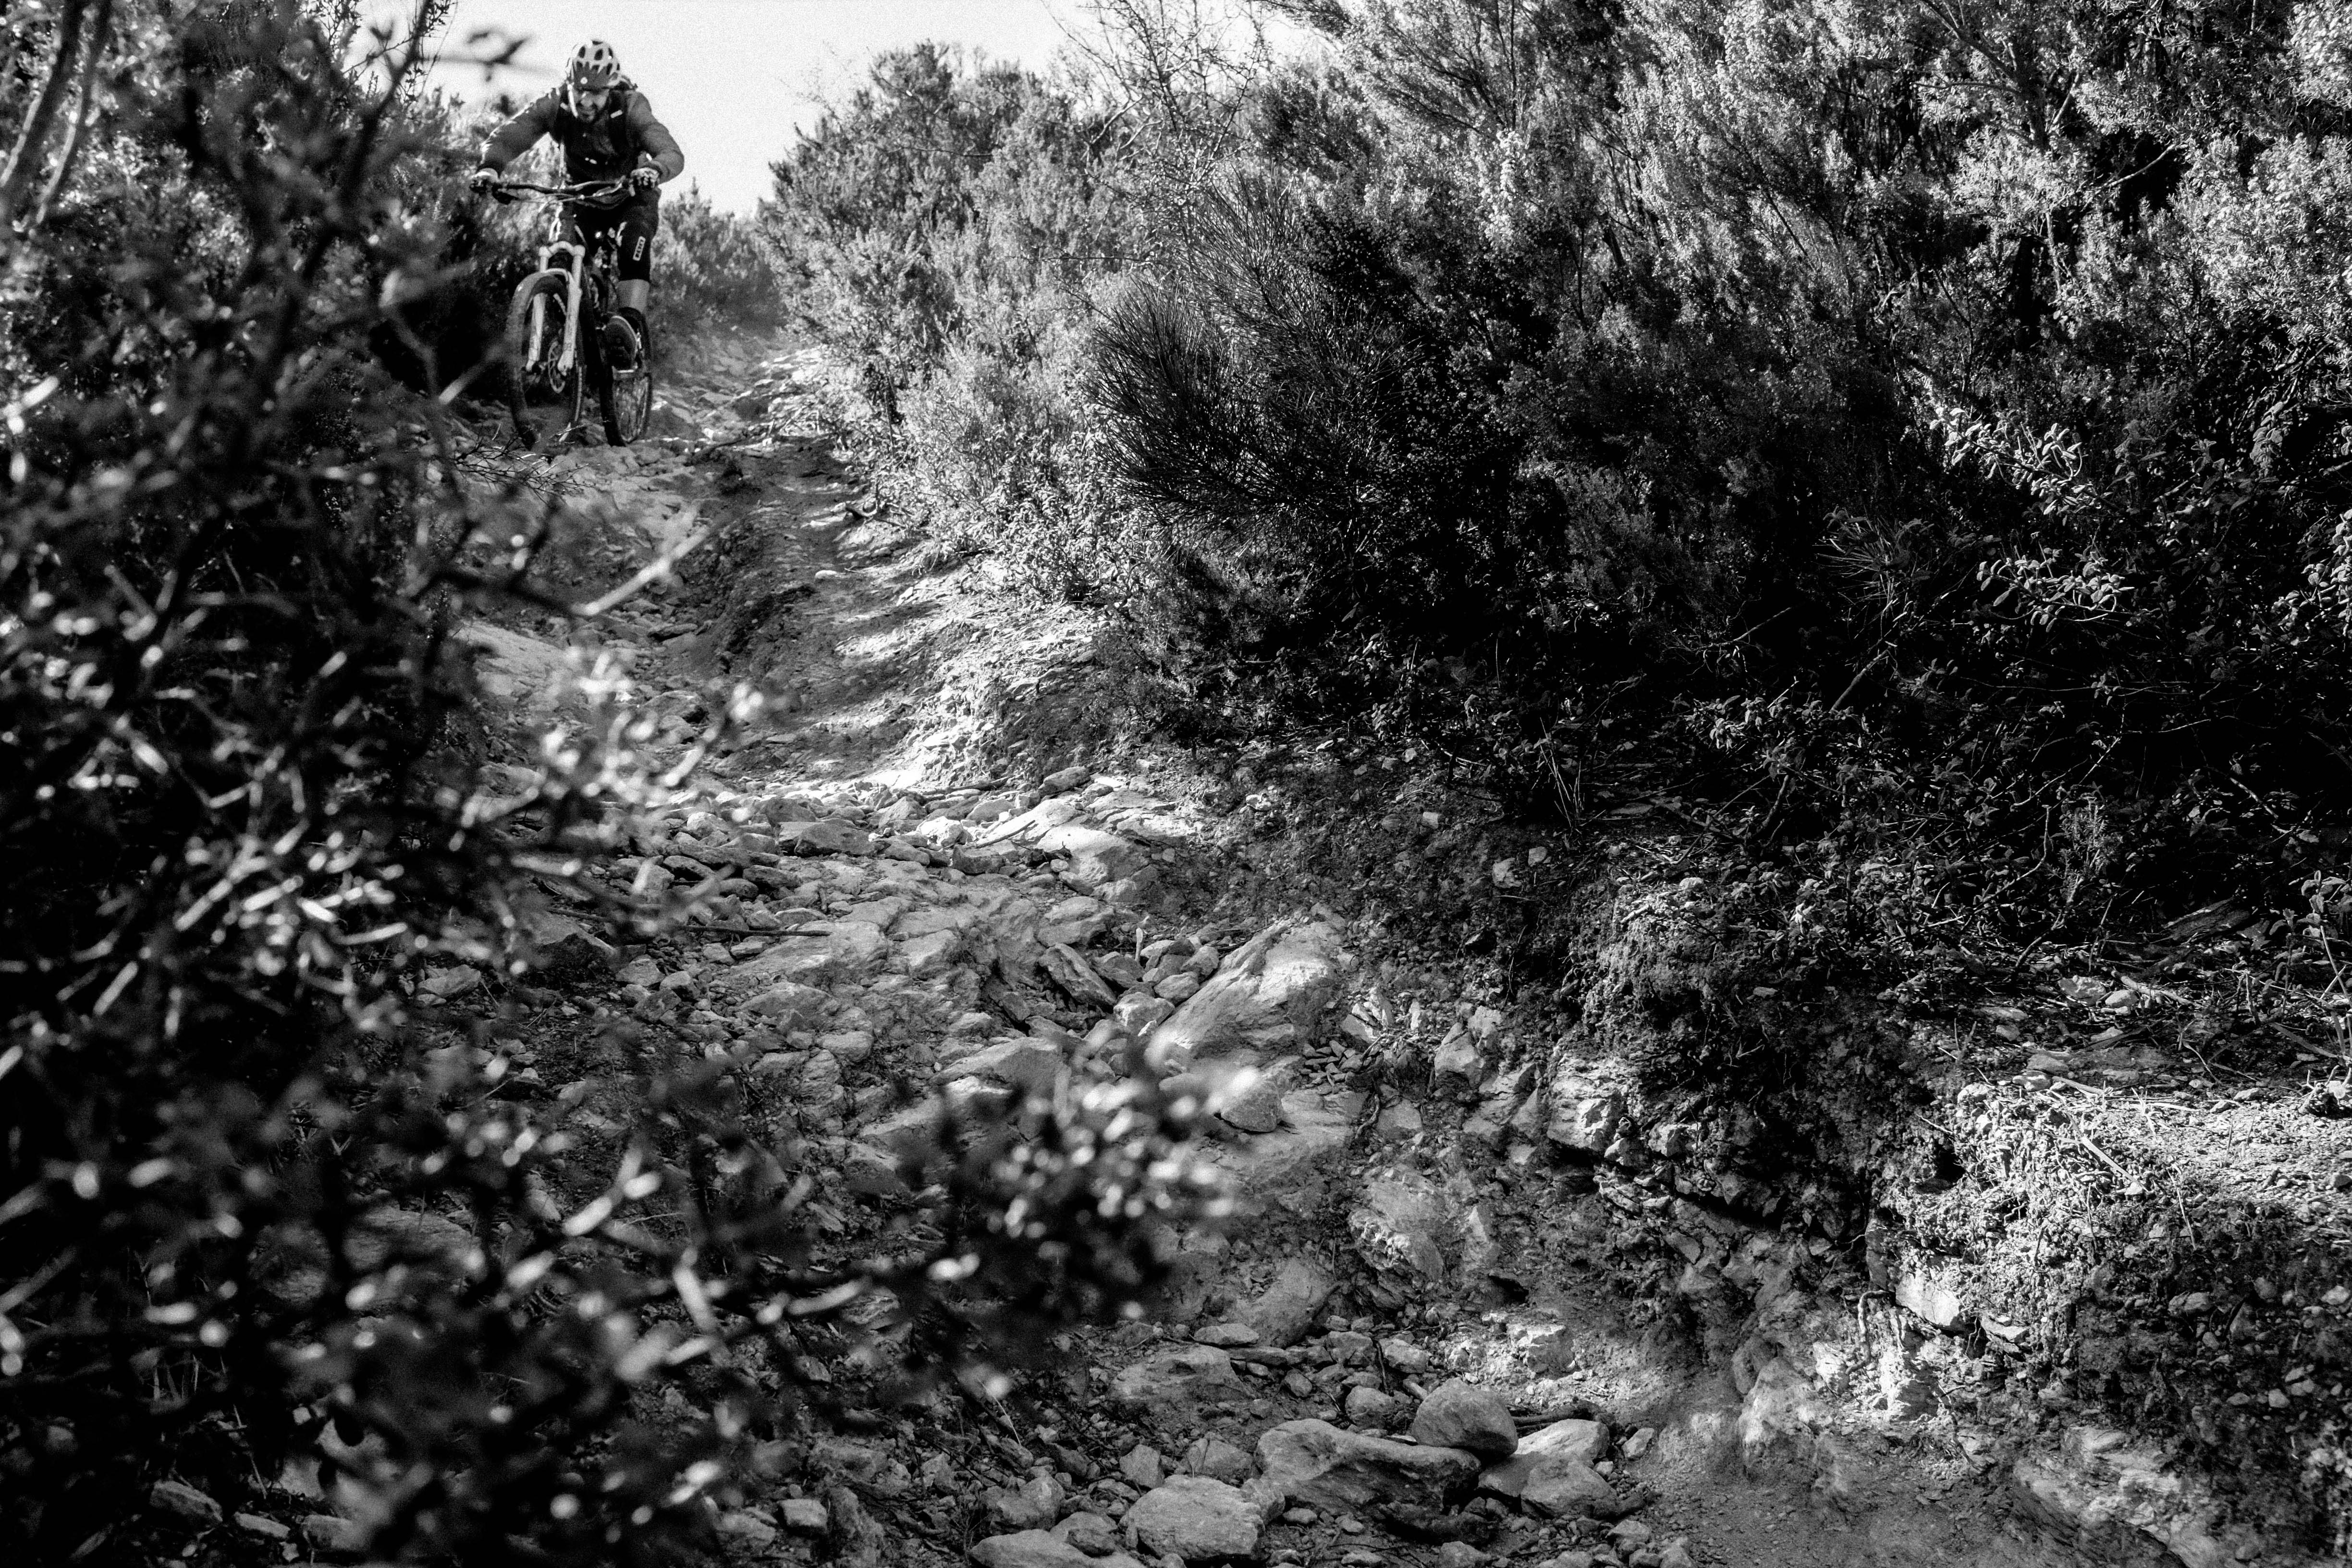 Ride the most technical trails...